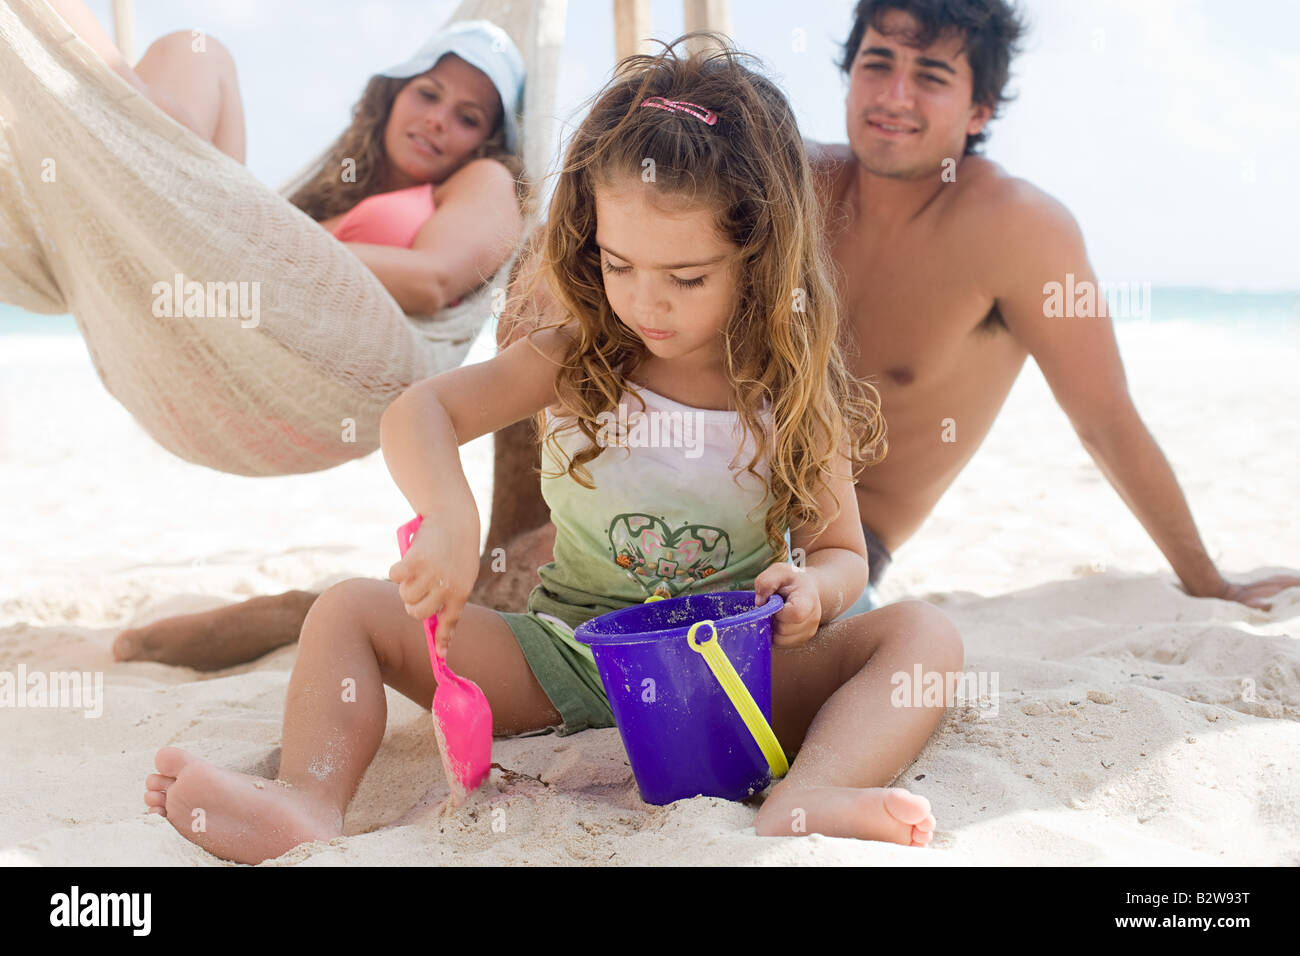 Parents watching their daughter - Stock Image